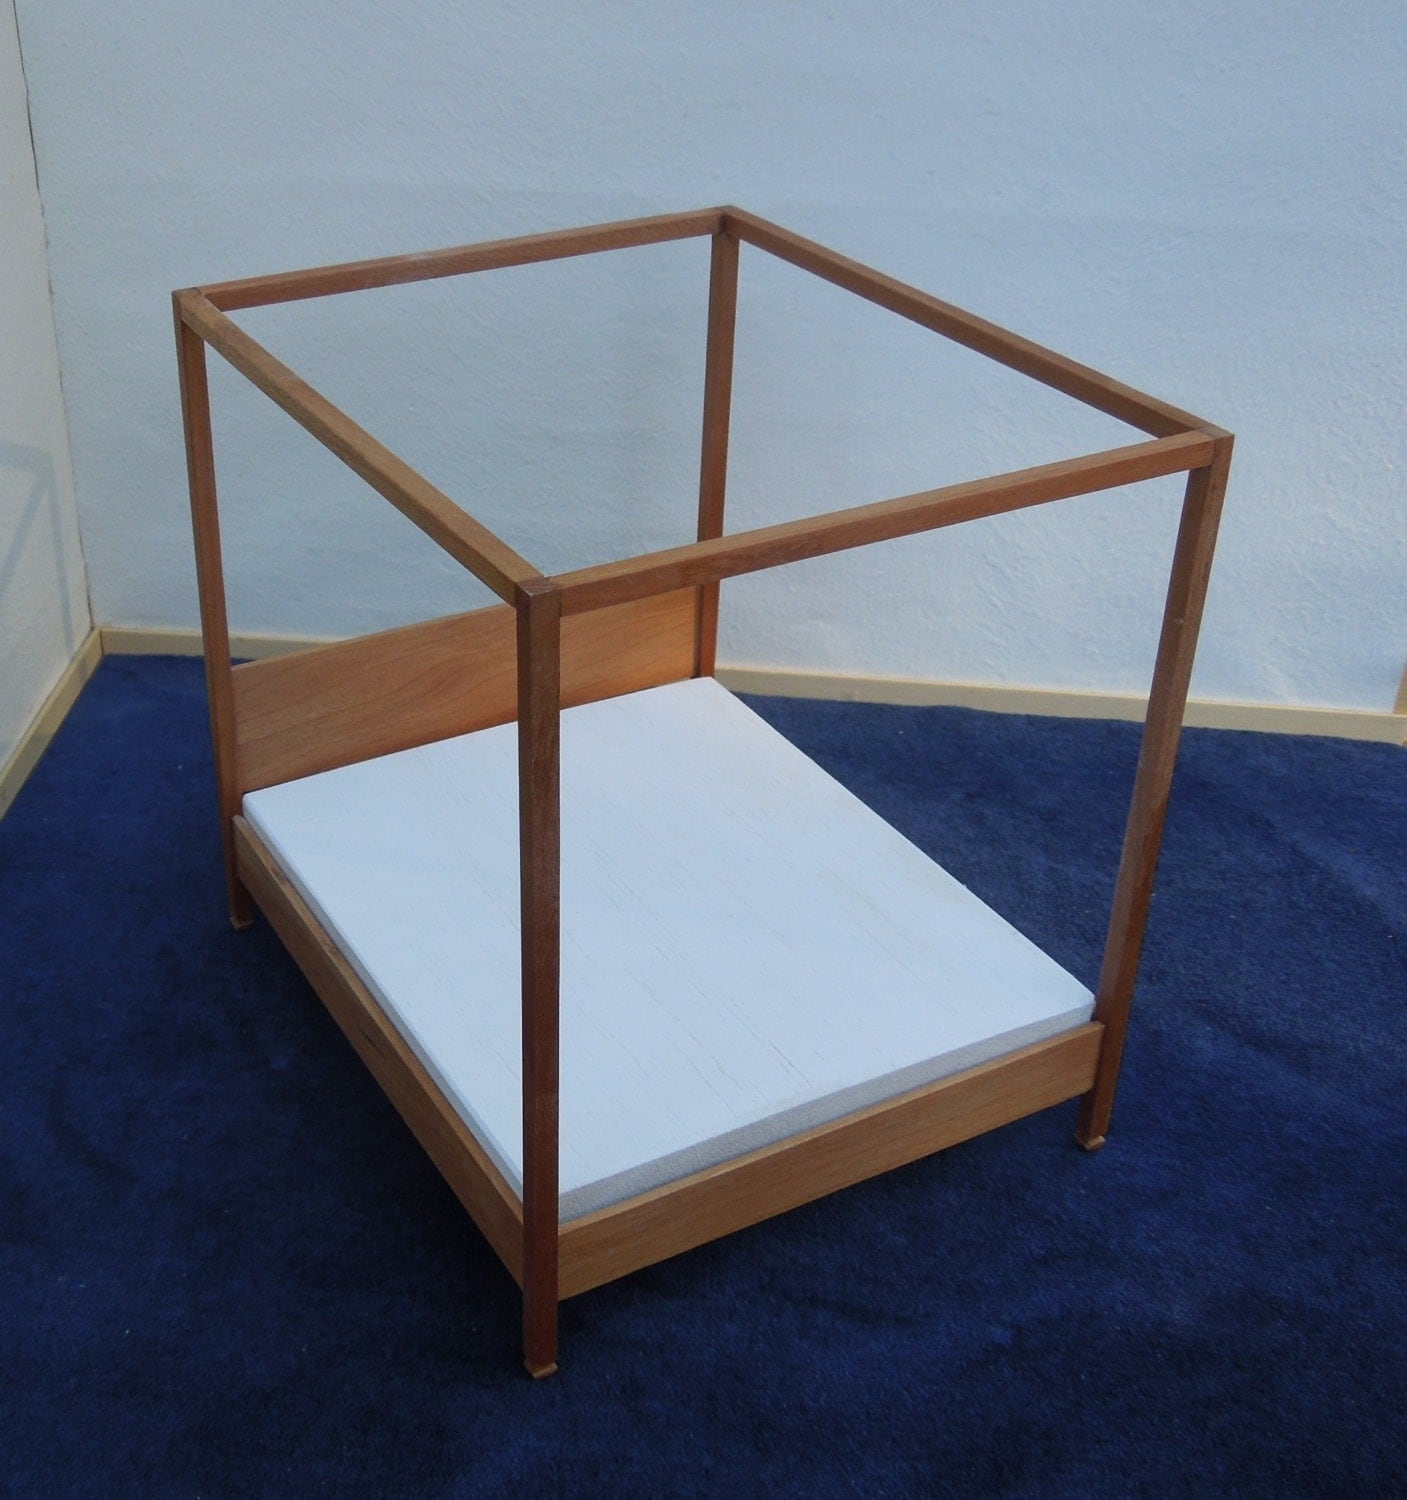 modern canopy bed in cherry 1 12 scale by minisx2 on etsy